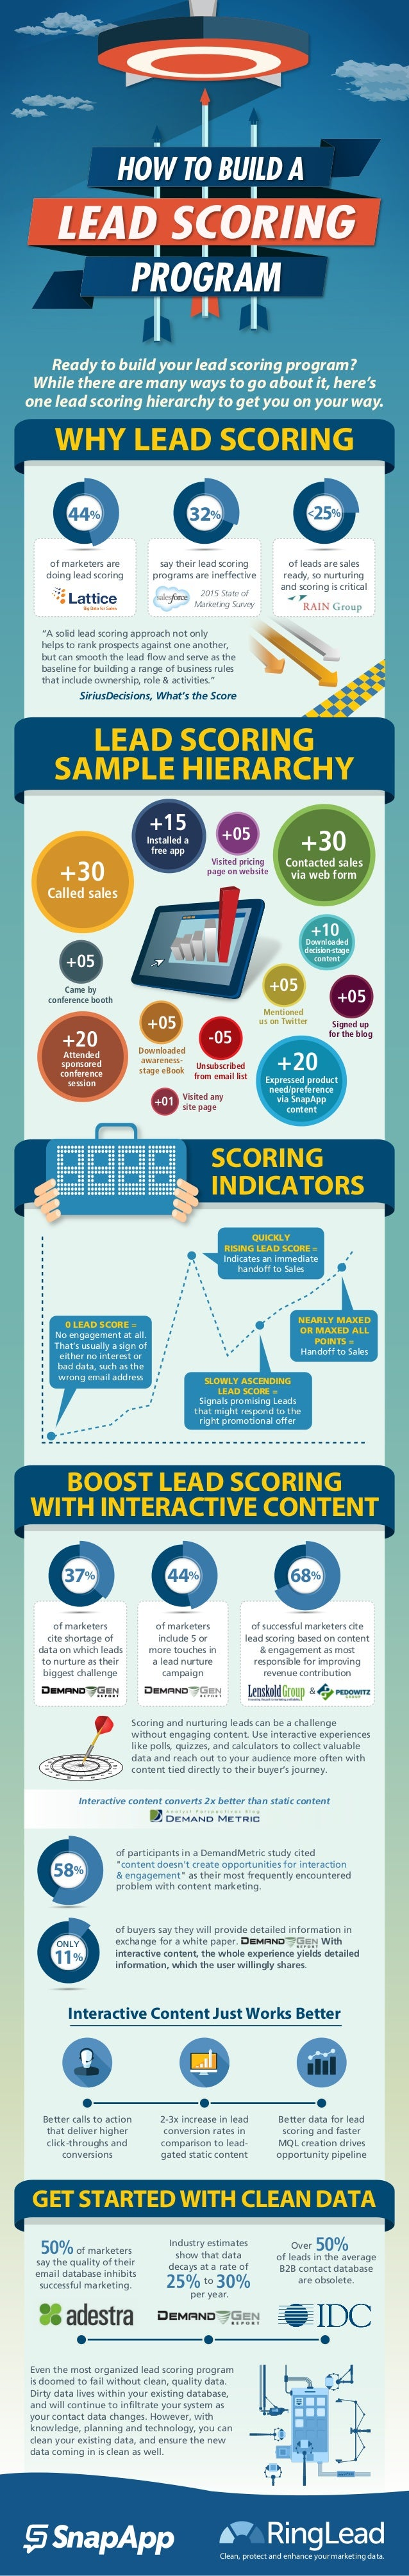 HOW TO BUILD A LEAD SCORING PROGRAM LEAD SCORING SAMPLE HIERARCHY WHY LEAD SCORING BOOST LEAD SCORING WITH INTERACTIVE CON...